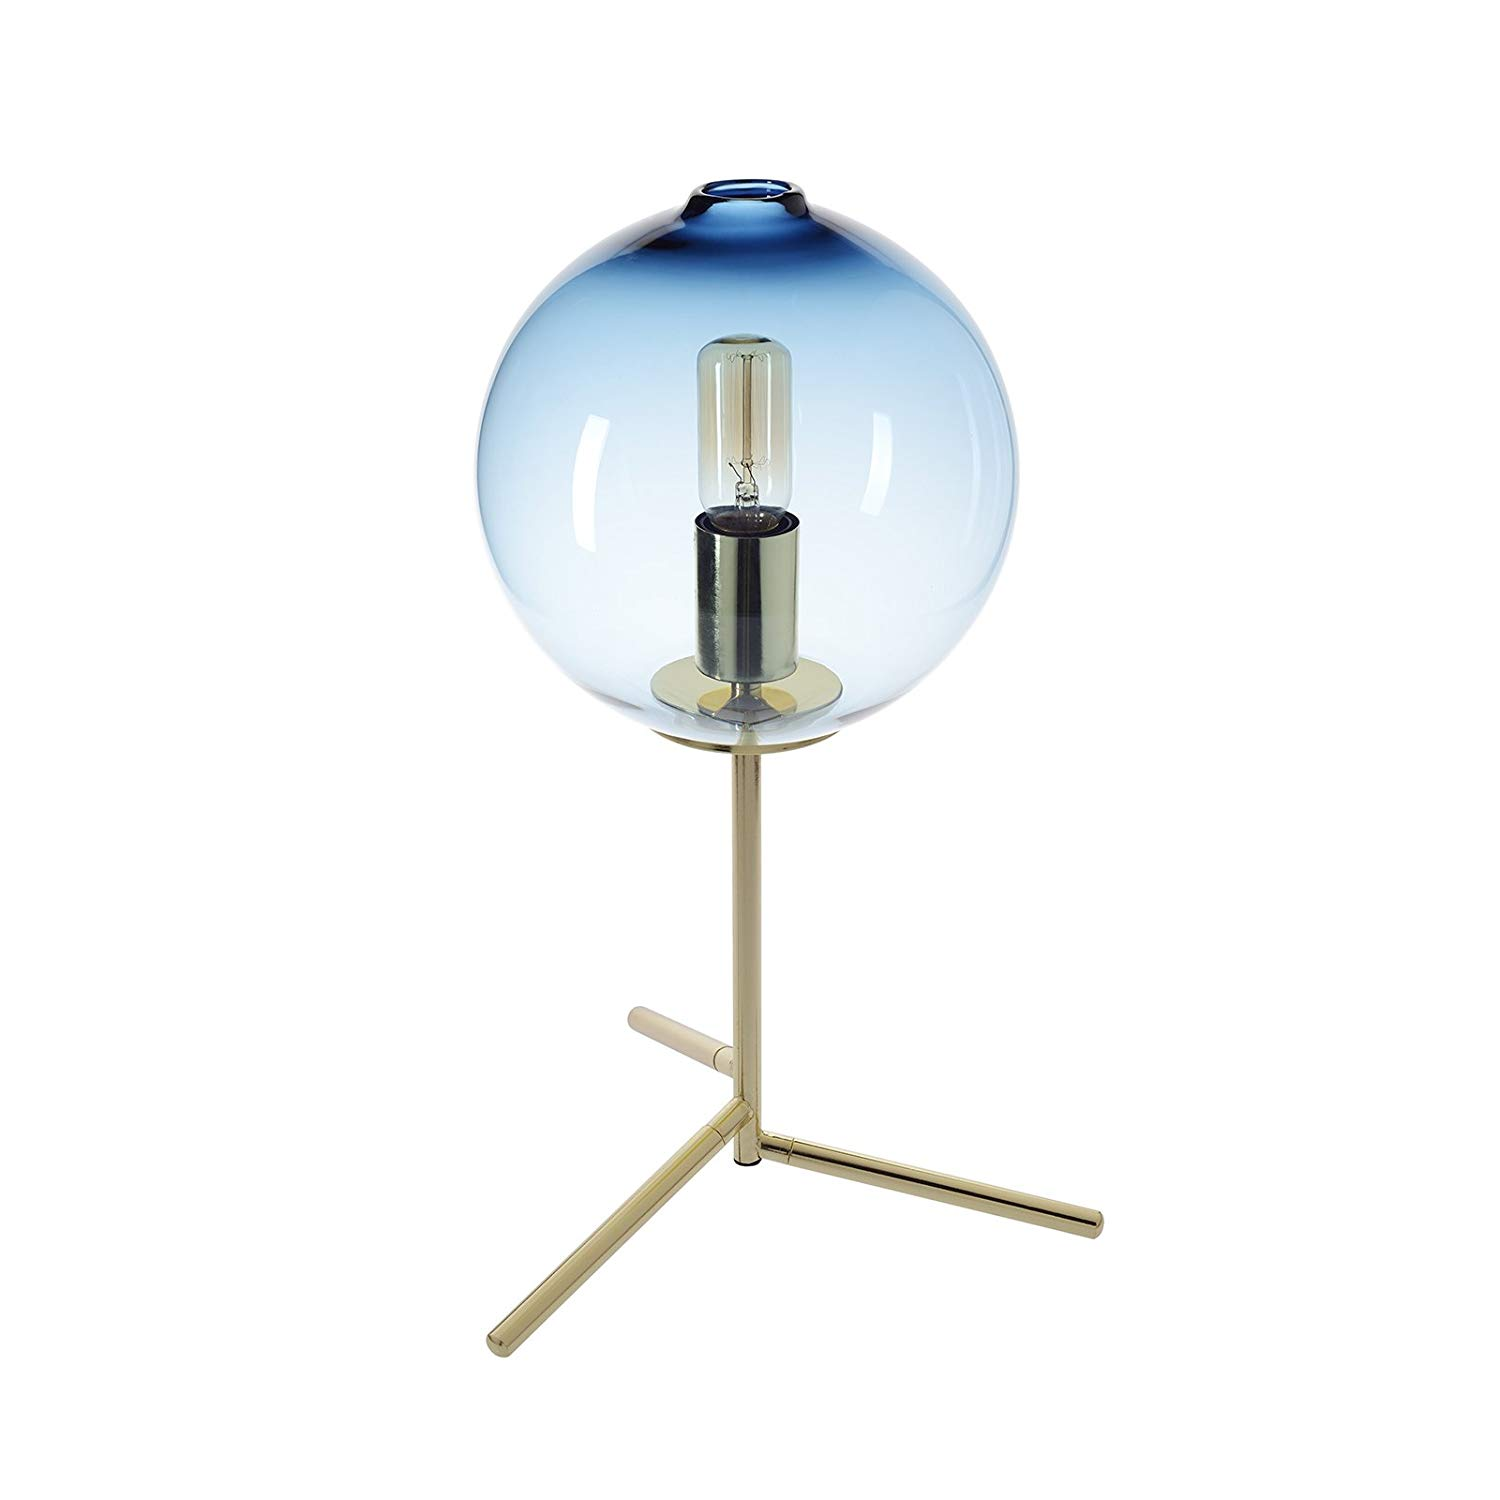 casamotion table lamp handblown glass light contemporary decorative accent lamps uplight side desk blue rustic coffee tucker furniture small cherry mosaic garden black patio slate